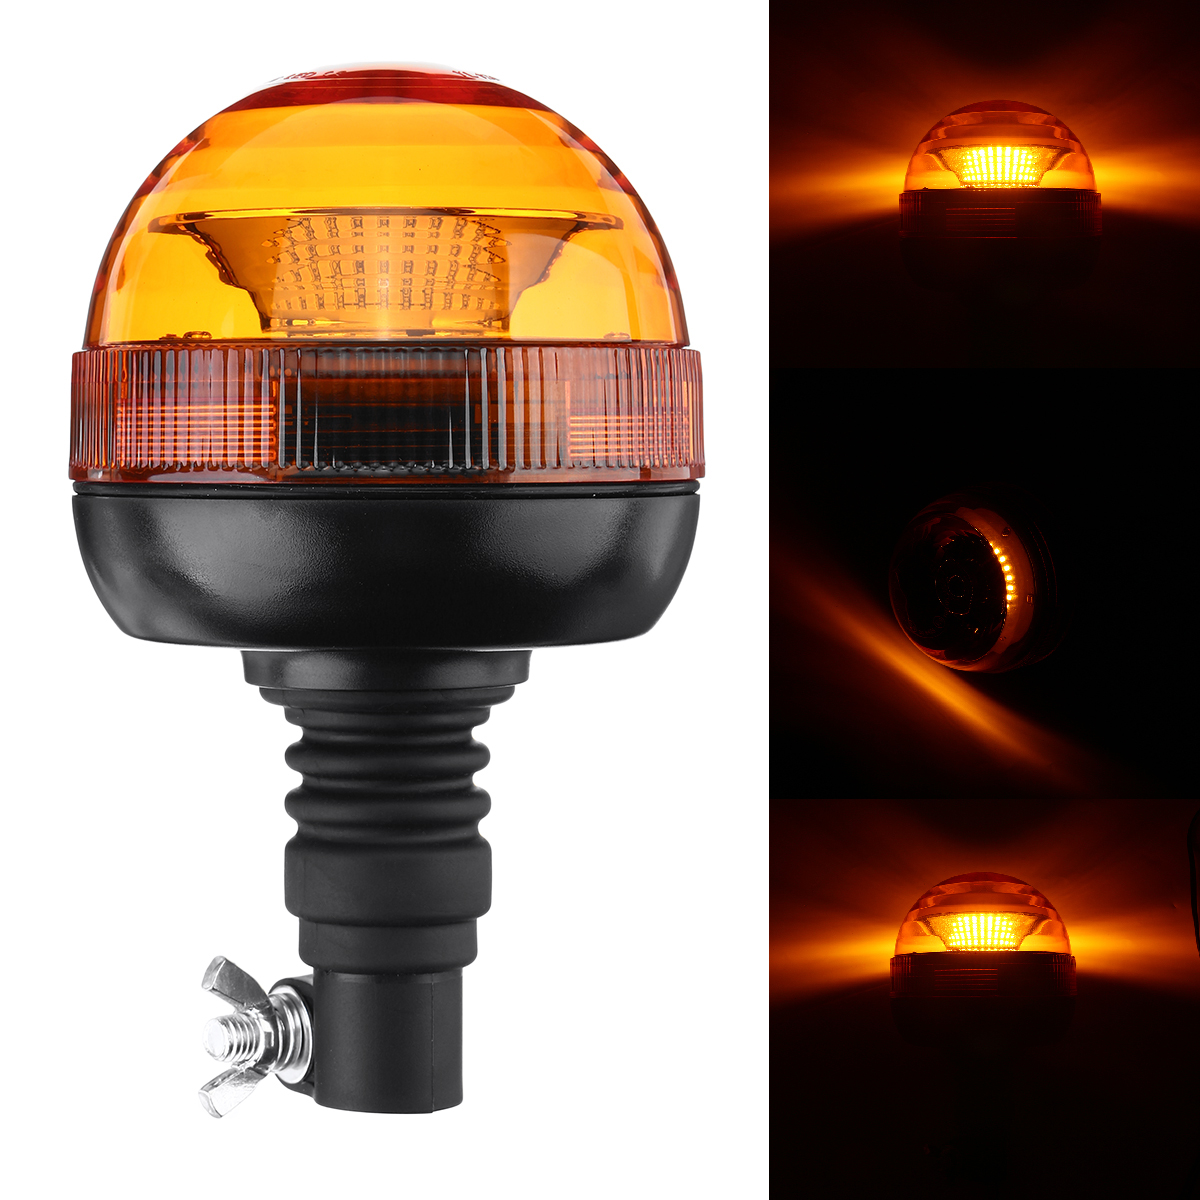 DC 12-24V Warning Light E9 + Flashing LED Beacon Flexble Din Pole Tractor Warning Light